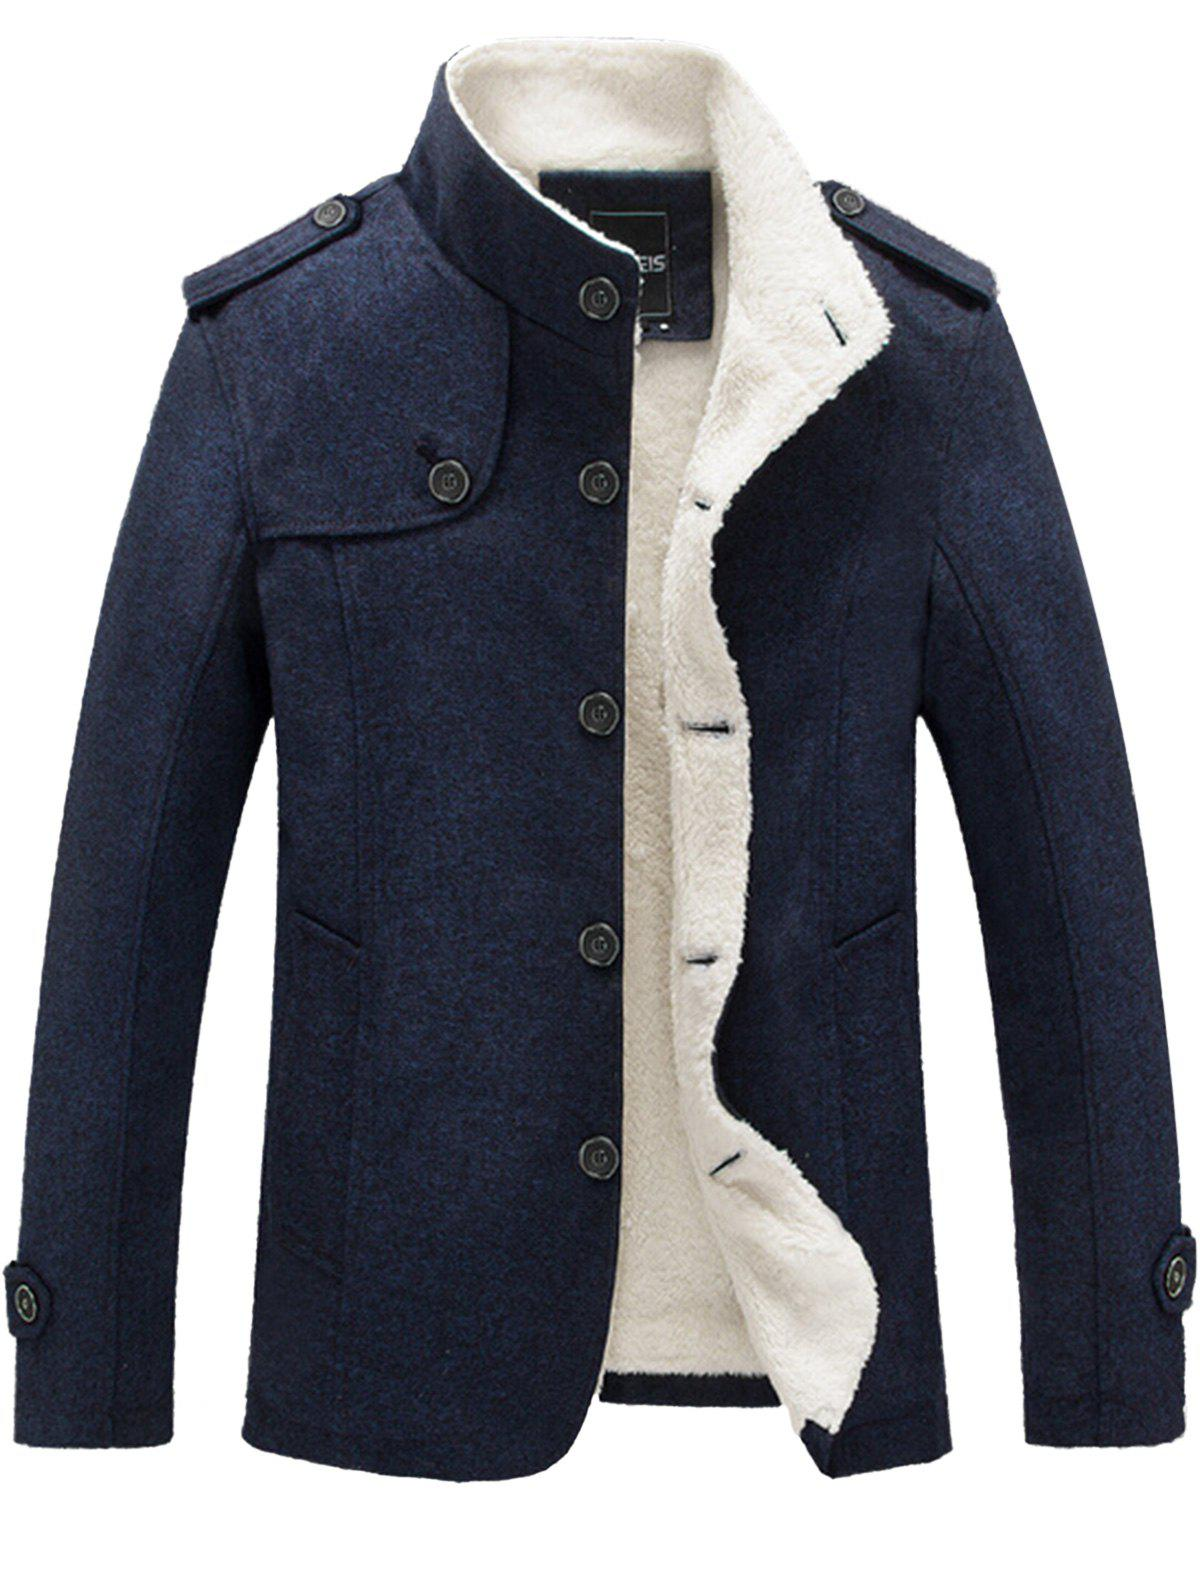 Epaulet Faux Shearling Lining Button Up JacketMEN<br><br>Size: 3XL; Color: BLUE; Clothes Type: Jackets; Style: Casual,Fashion,Streetwear; Material: Cotton,Polyester; Collar: Stand Collar; Shirt Length: Regular; Sleeve Length: Long Sleeves; Season: Fall,Winter; Closure Type: Single Breasted; Occasion: Casual,Daily Use,Going Out; Weight: 1.2200kg; Package Contents: 1 x Jacket;